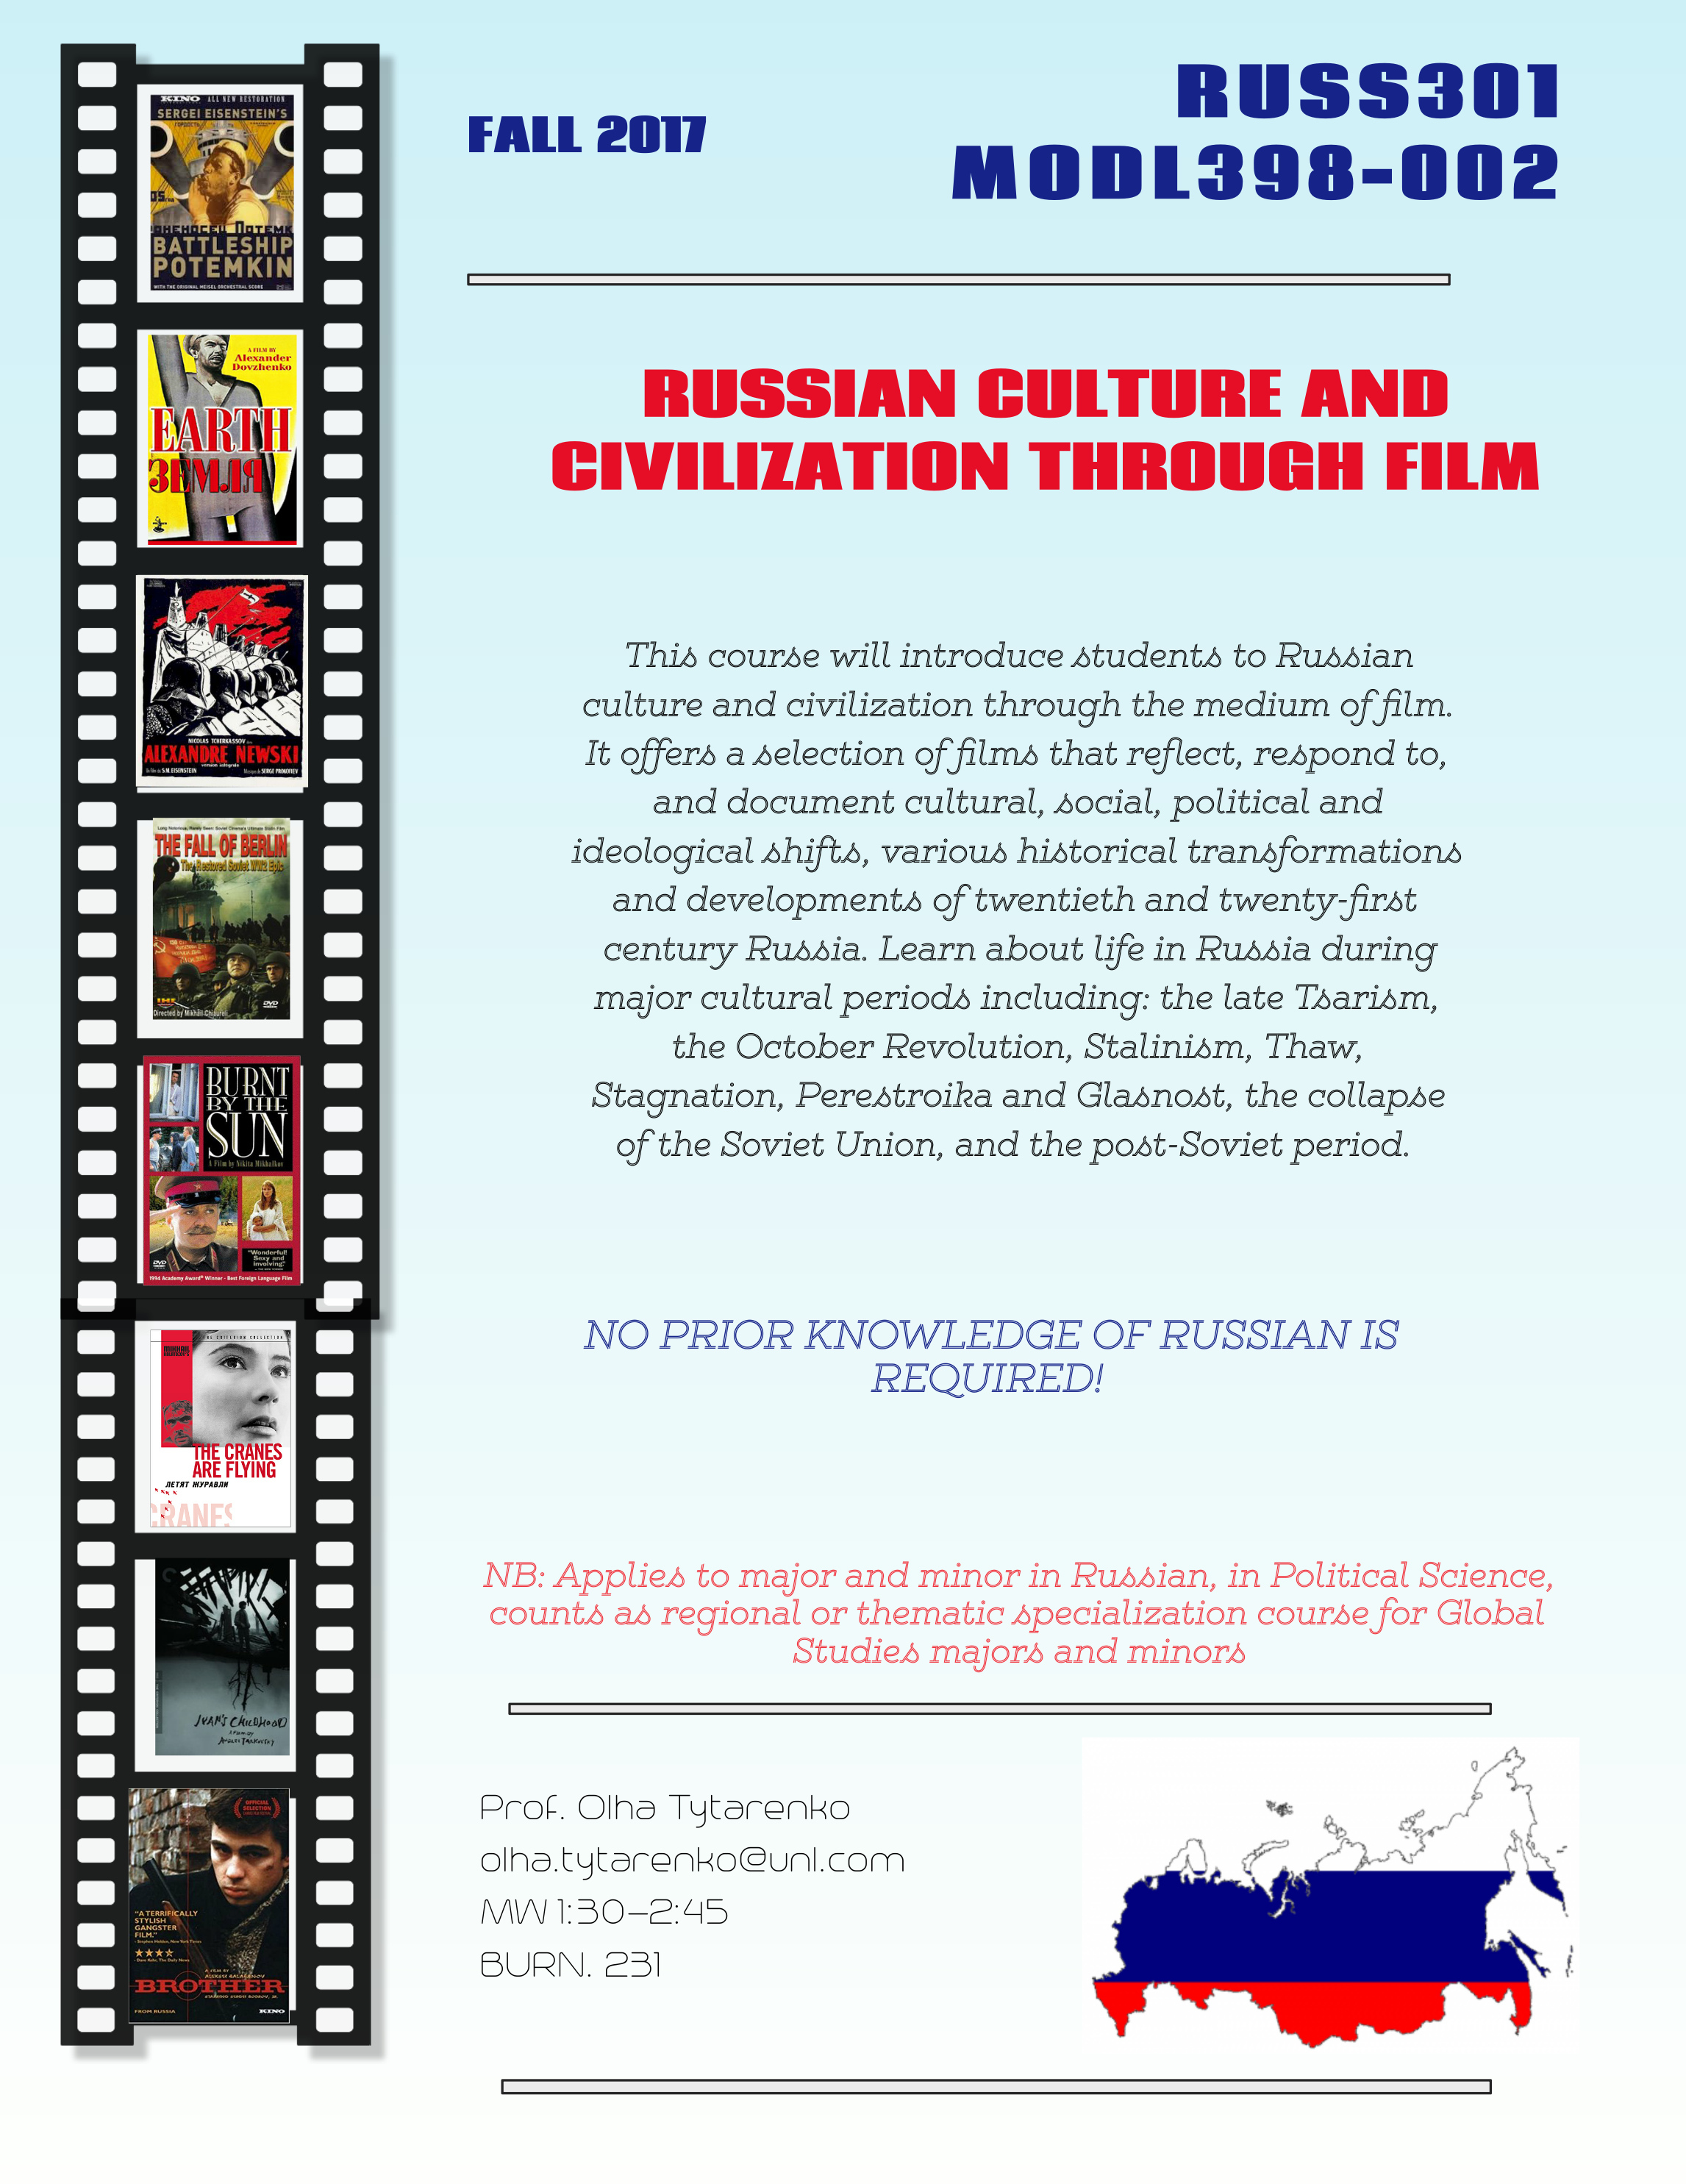 FALL COURSE: MODL398-002: Russian Culture and Civilization Through Film